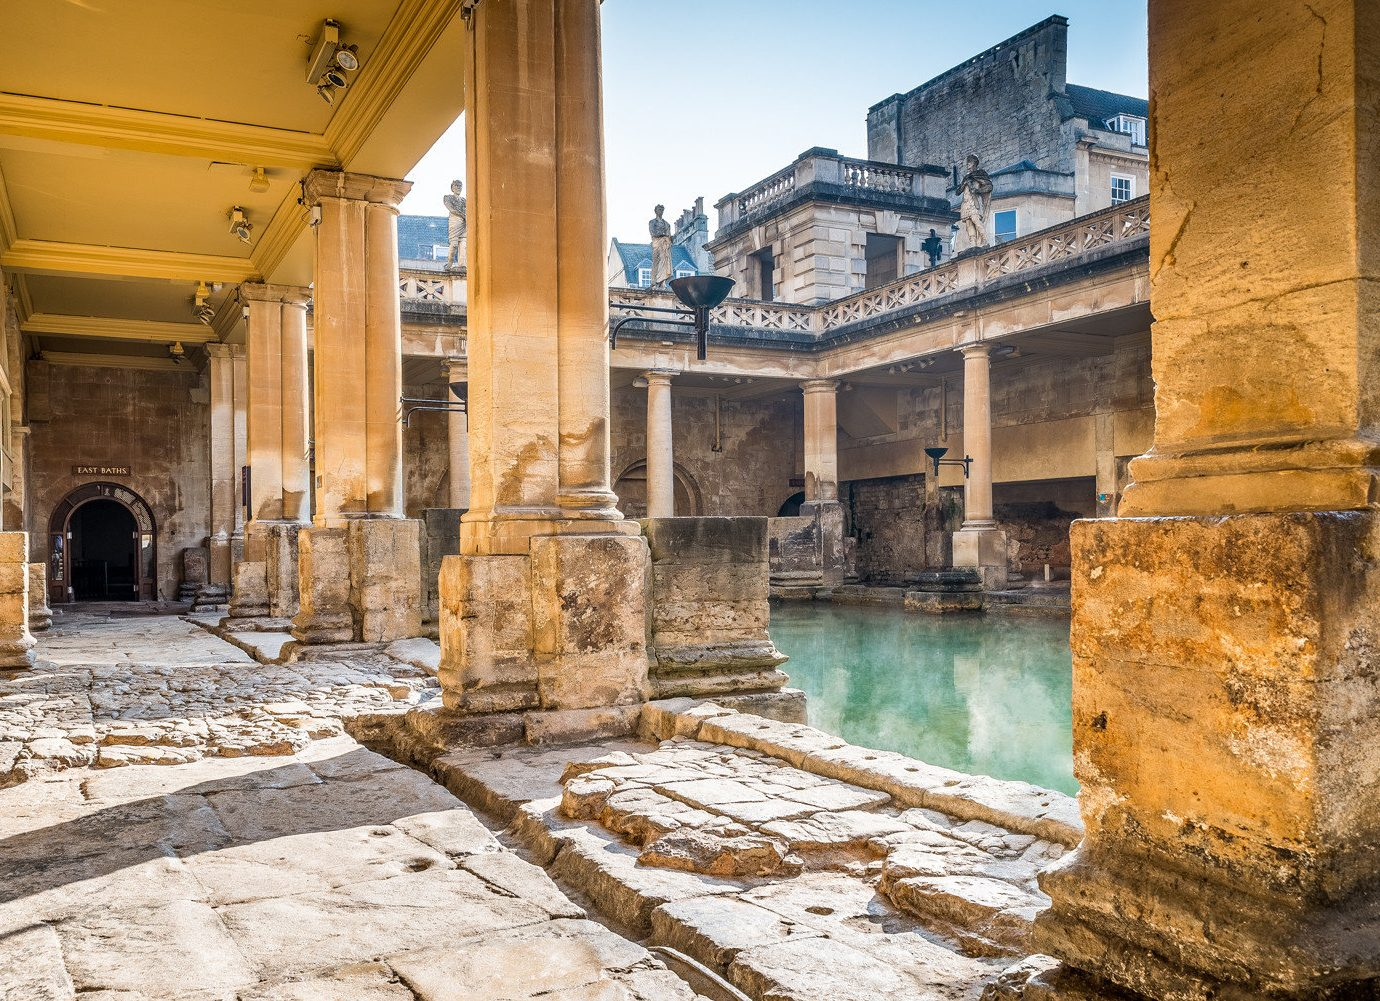 Health + Wellness Luxury Travel Trip Ideas building outdoor ground ancient history historic site archaeological site Ruins stone tourist attraction temple ancient rome way history column window facade old concrete arch cement colonnade